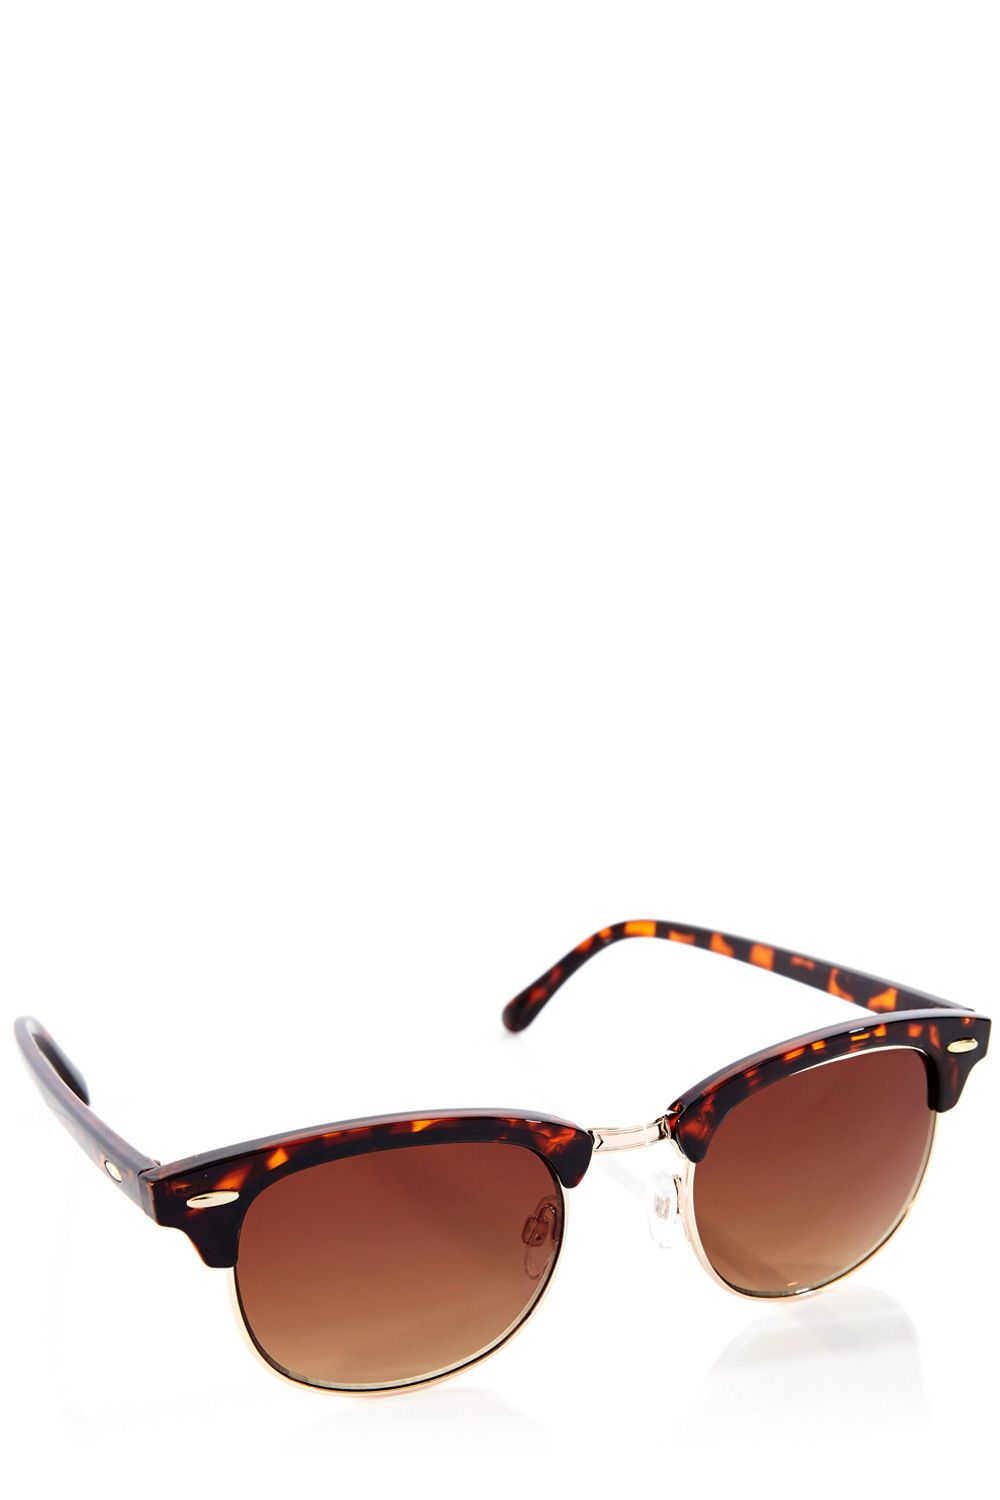 Half metal frame sunglasses